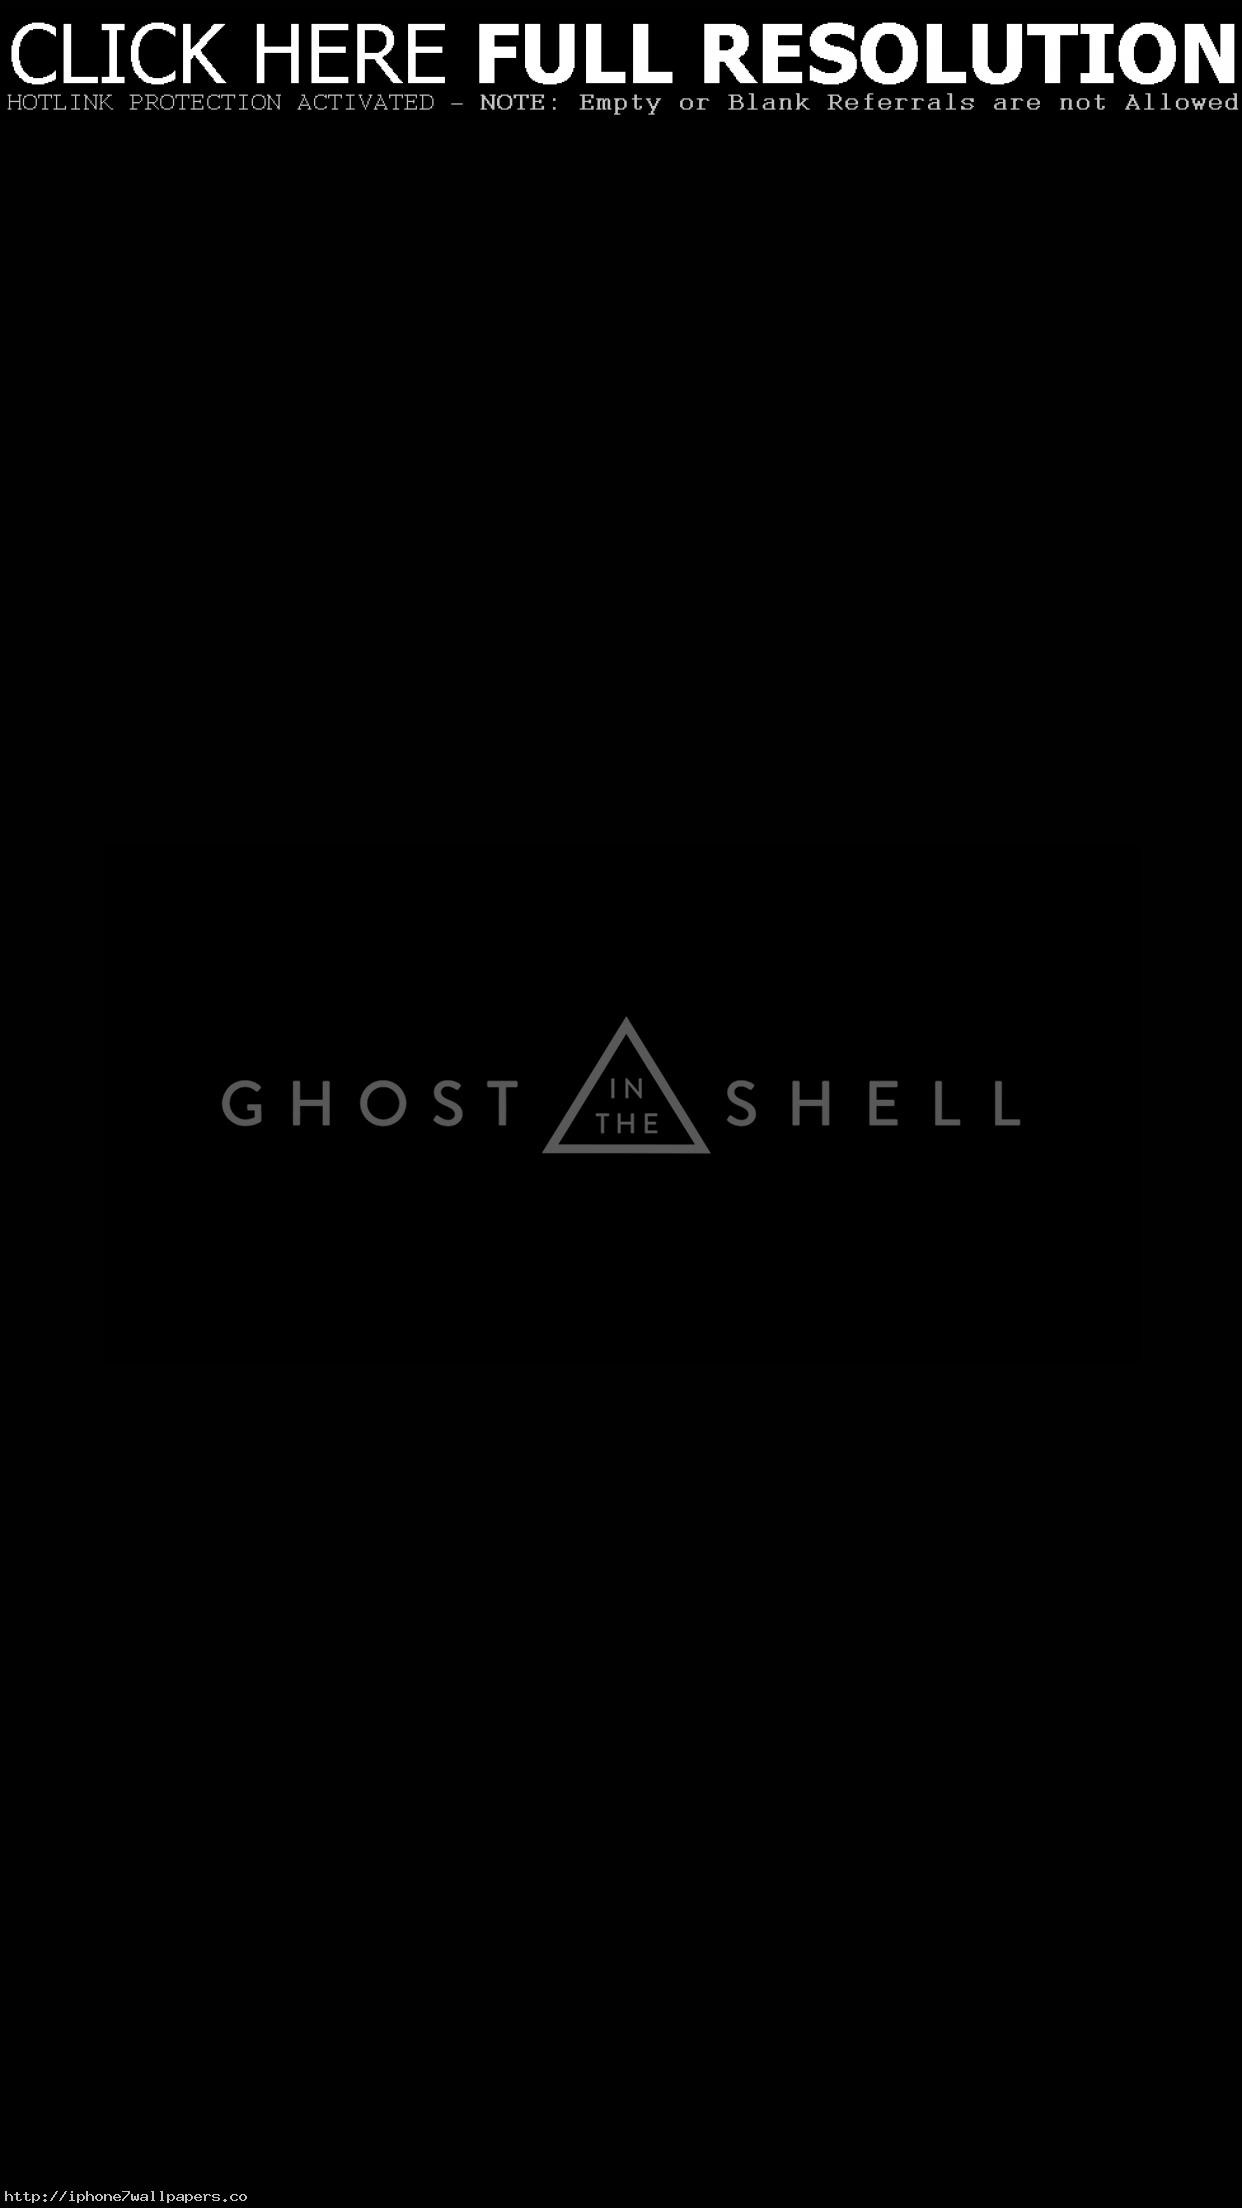 Ghost In The Shell Dark Logo Film Illustration Art Android wallpaper –  Android HD wallpapers